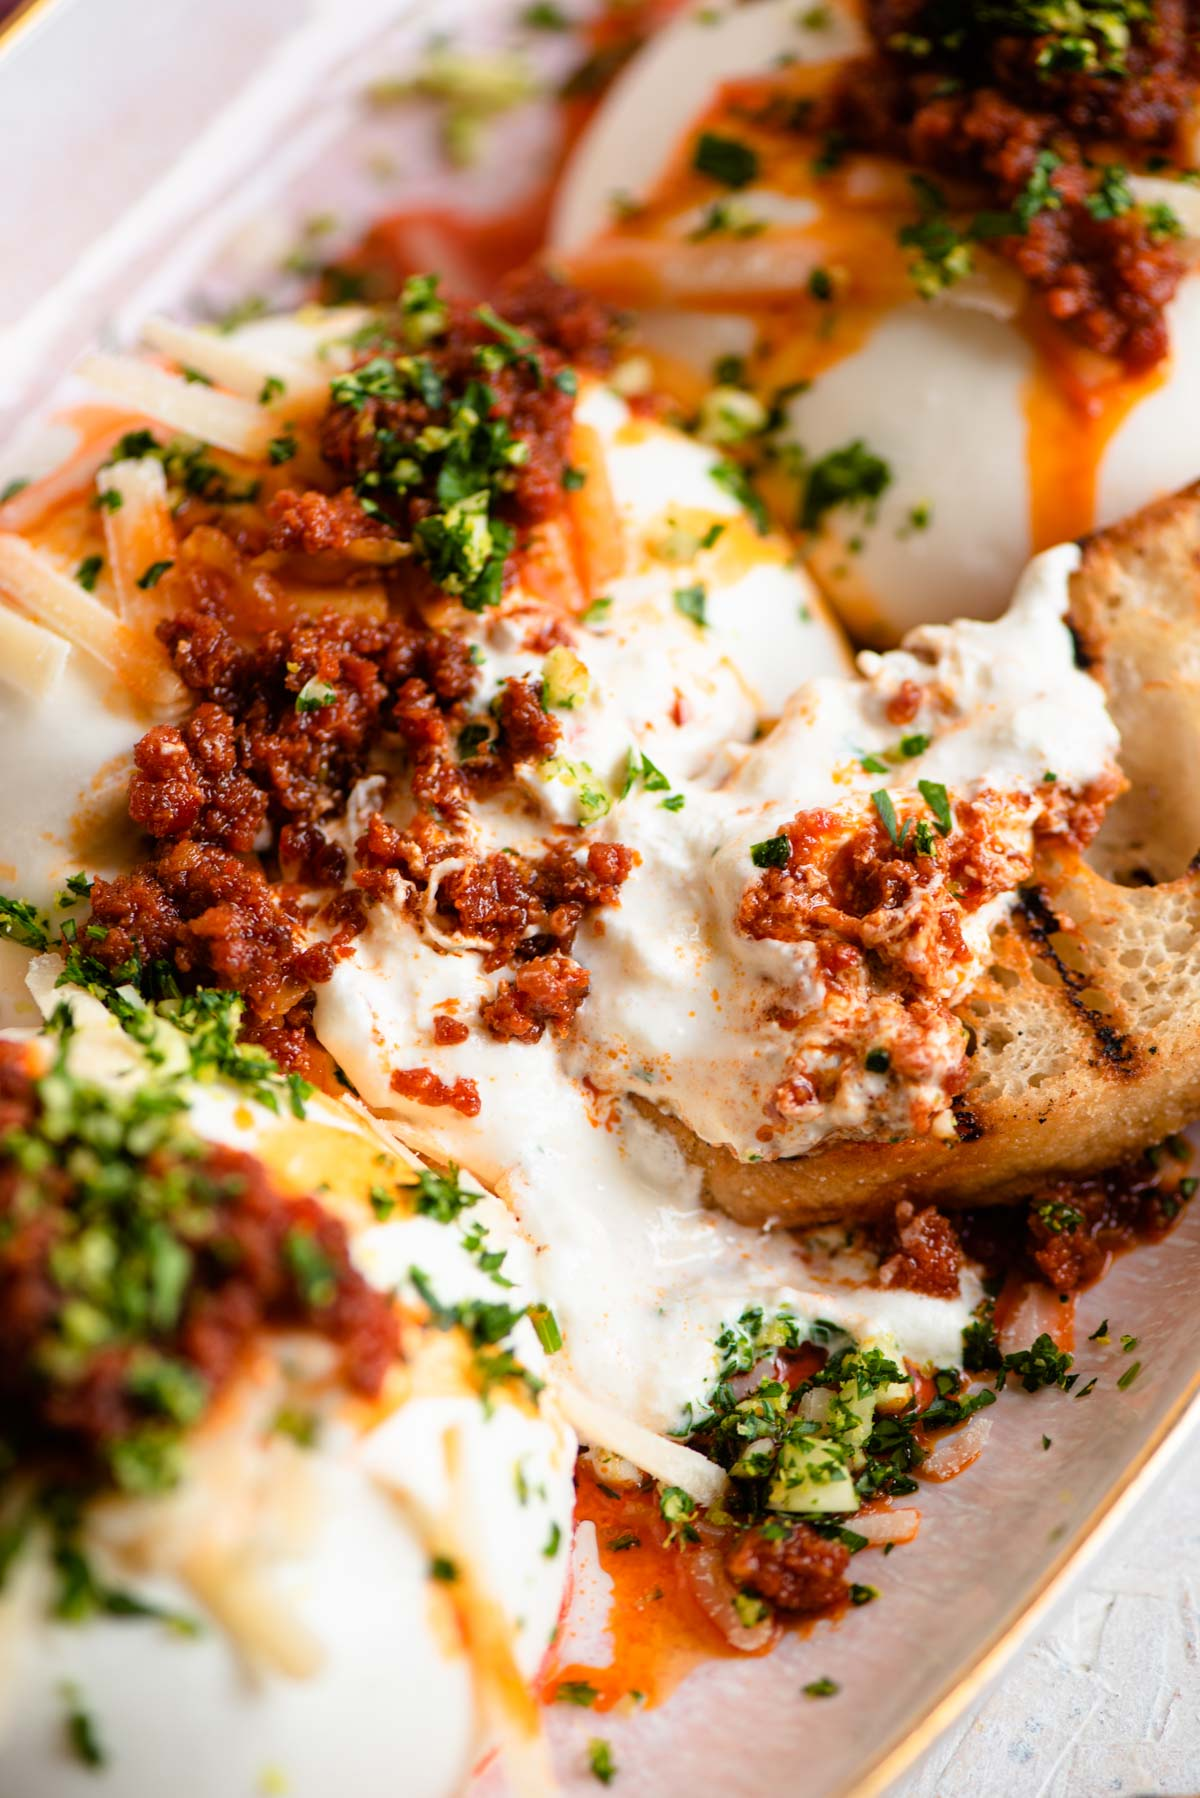 A close up of burrata cheese with 'Nduja and ciabatta bread